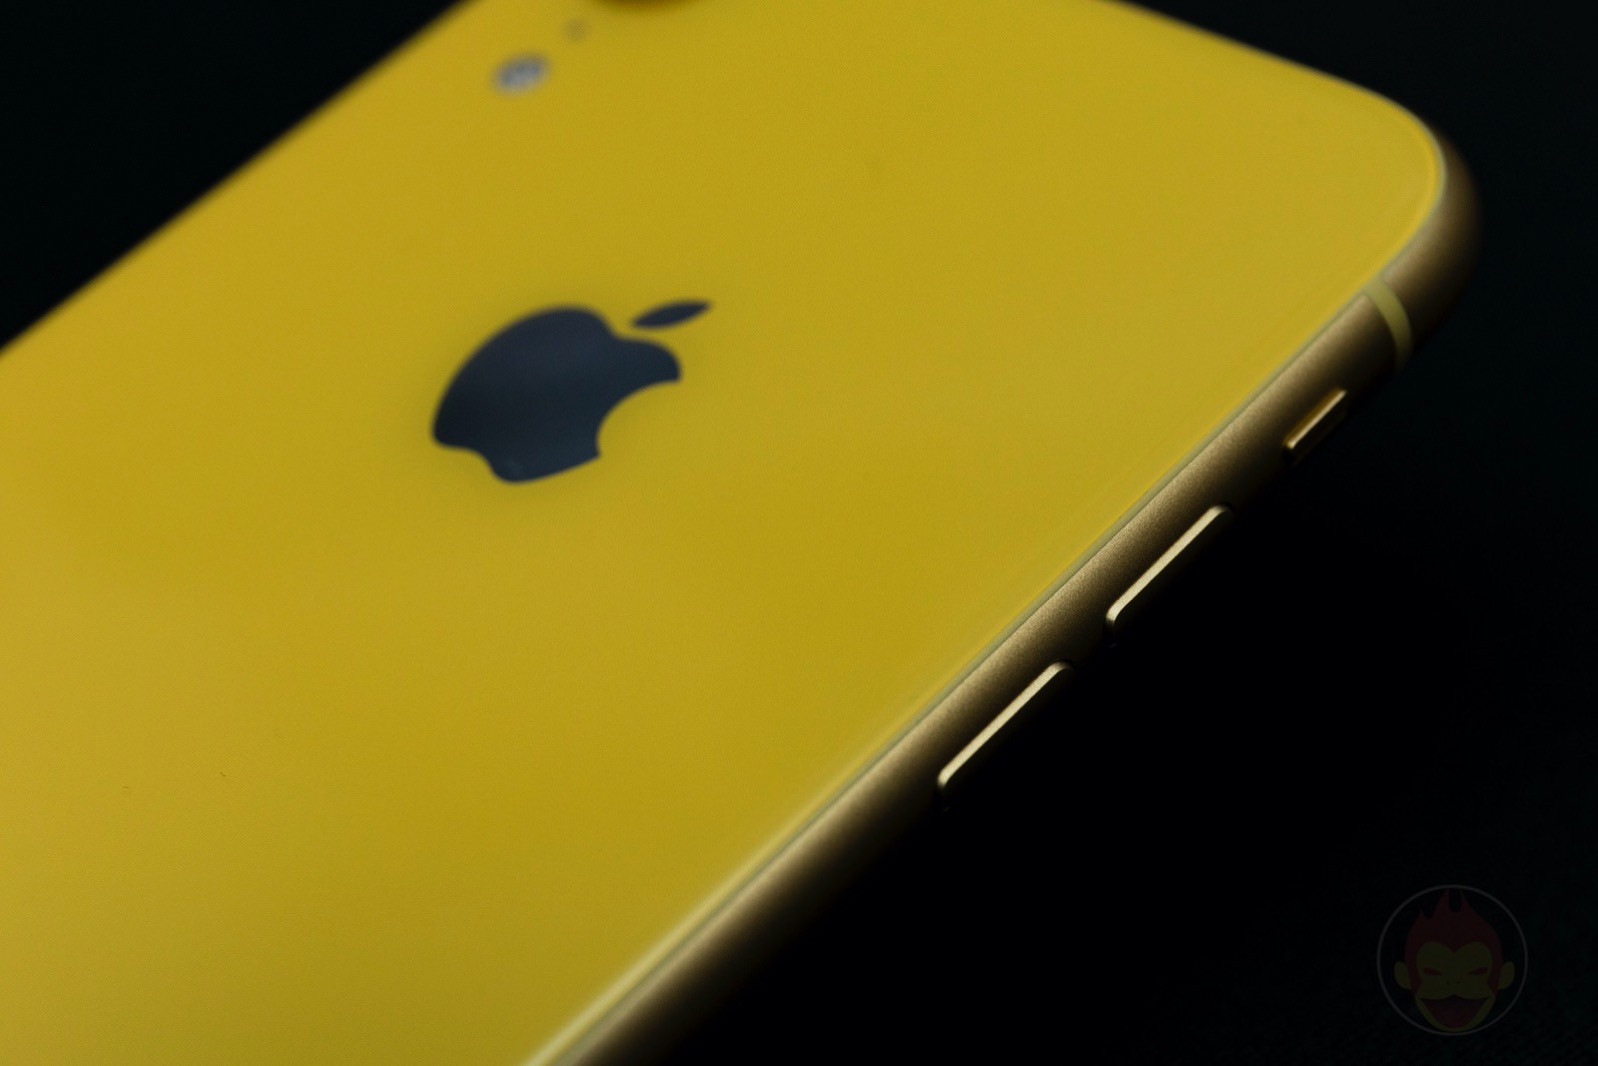 iPhone-XR-First-Impression-Review-09.jpg